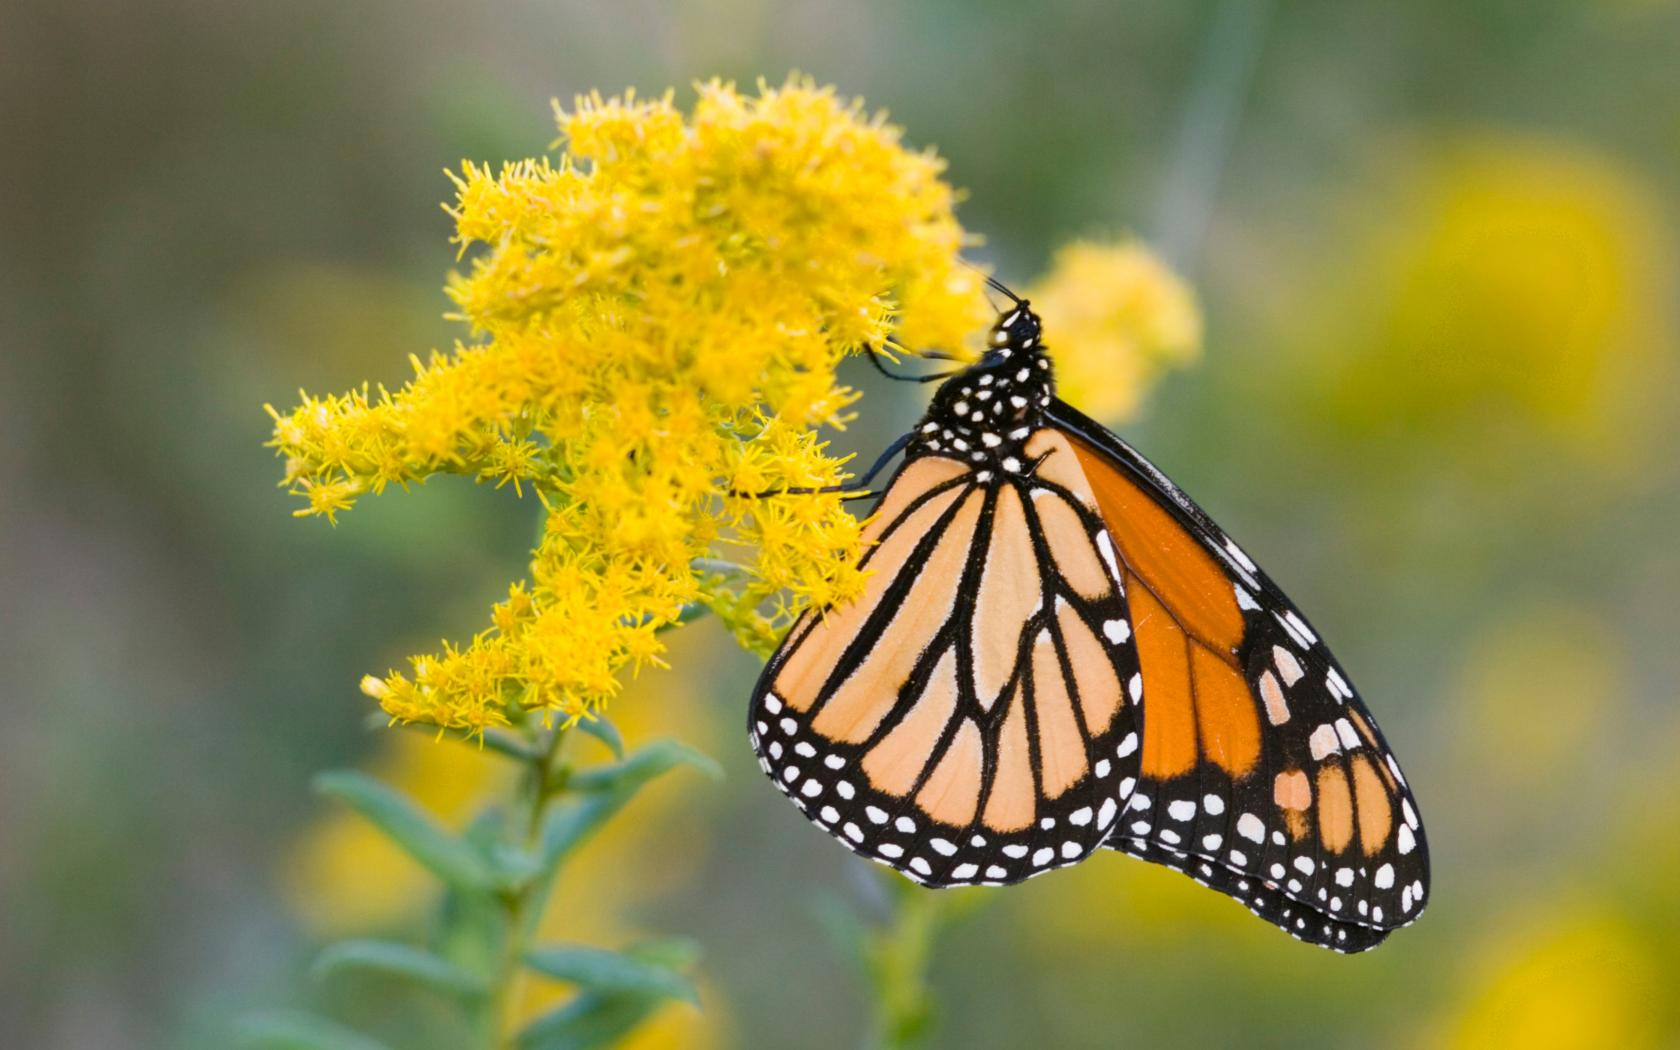 Download Animated Wallpapers For Mobile Phone 4k Nature Wallpaper With Picture Of Monarch Butterfly On